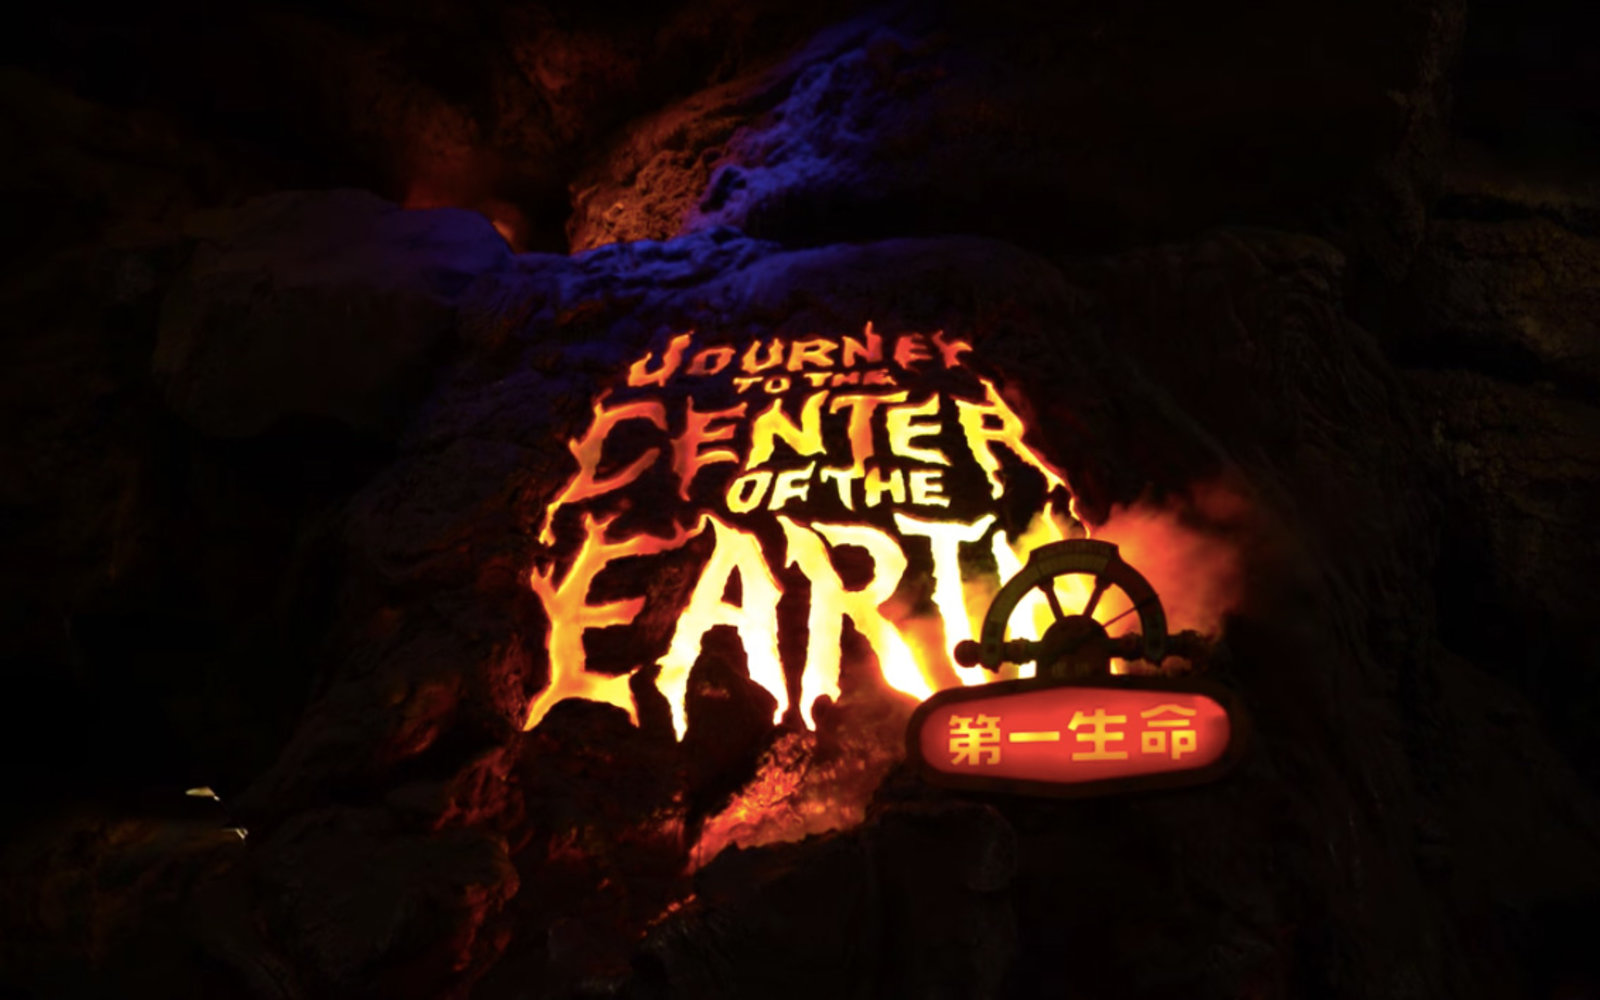 Journey to the Center of the Earth — Tokyo DisneySea